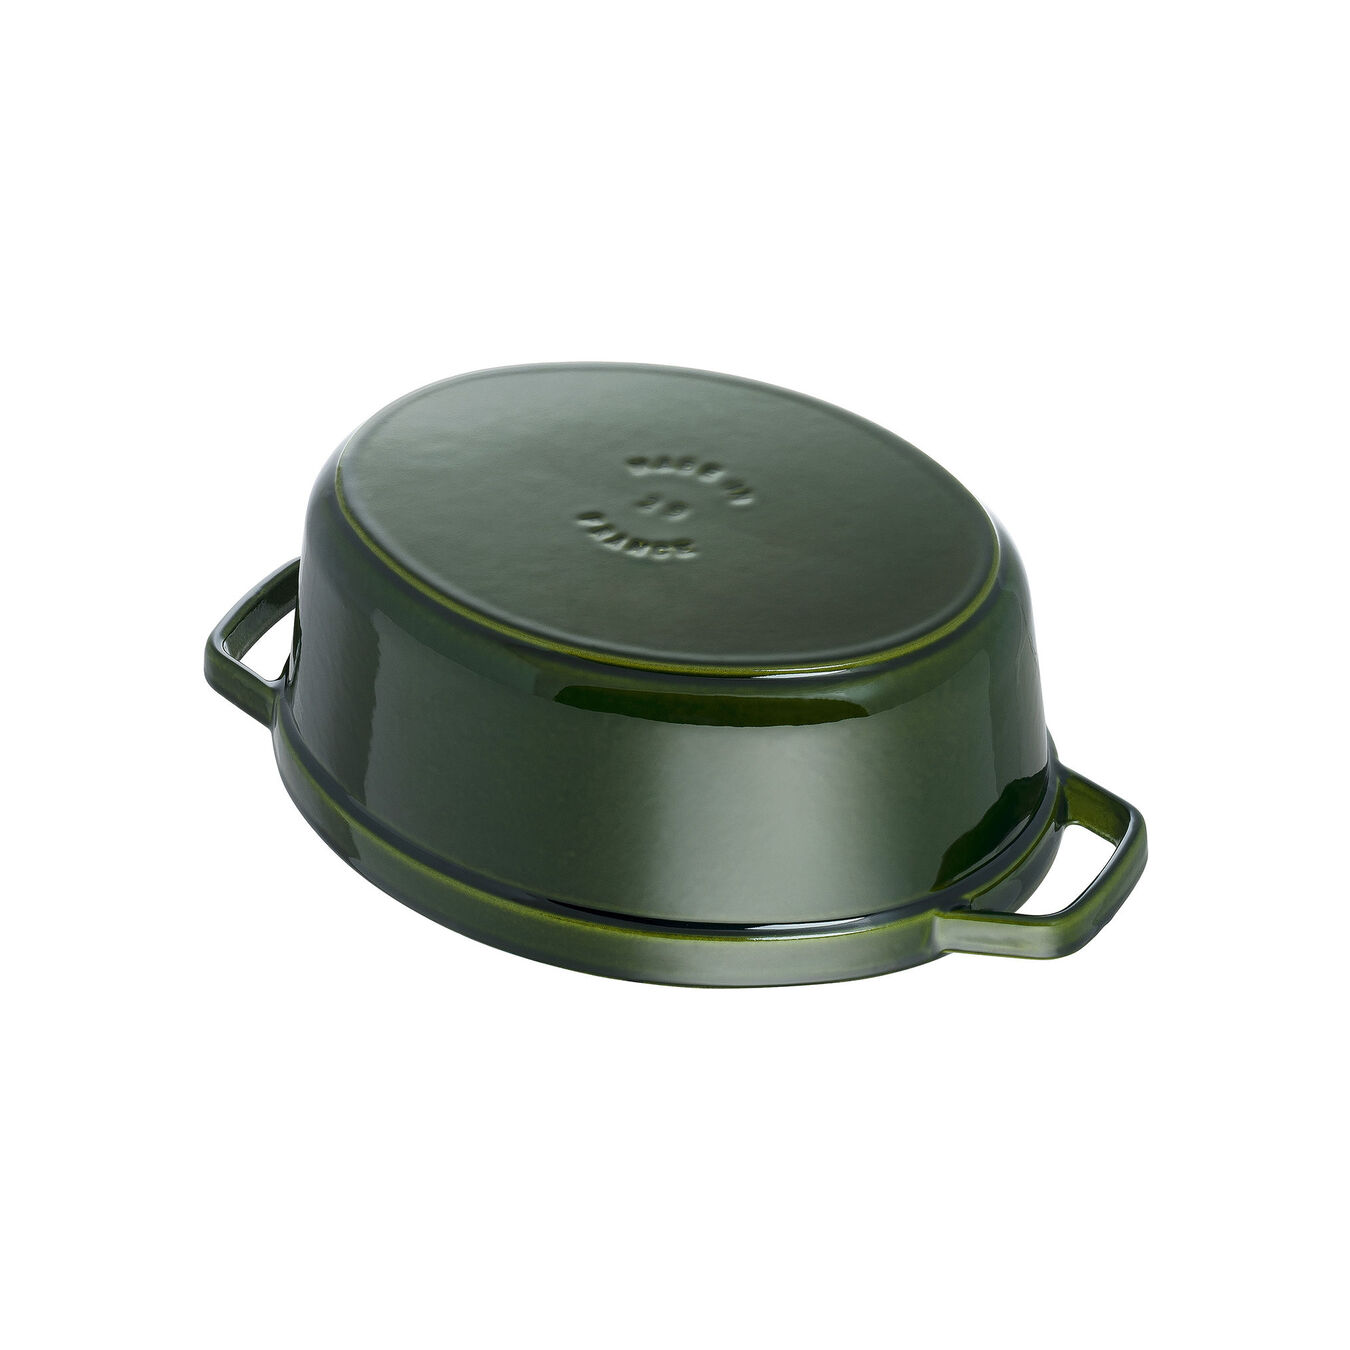 4.25 l Cast iron oval Cocotte, Basil-Green,,large 4